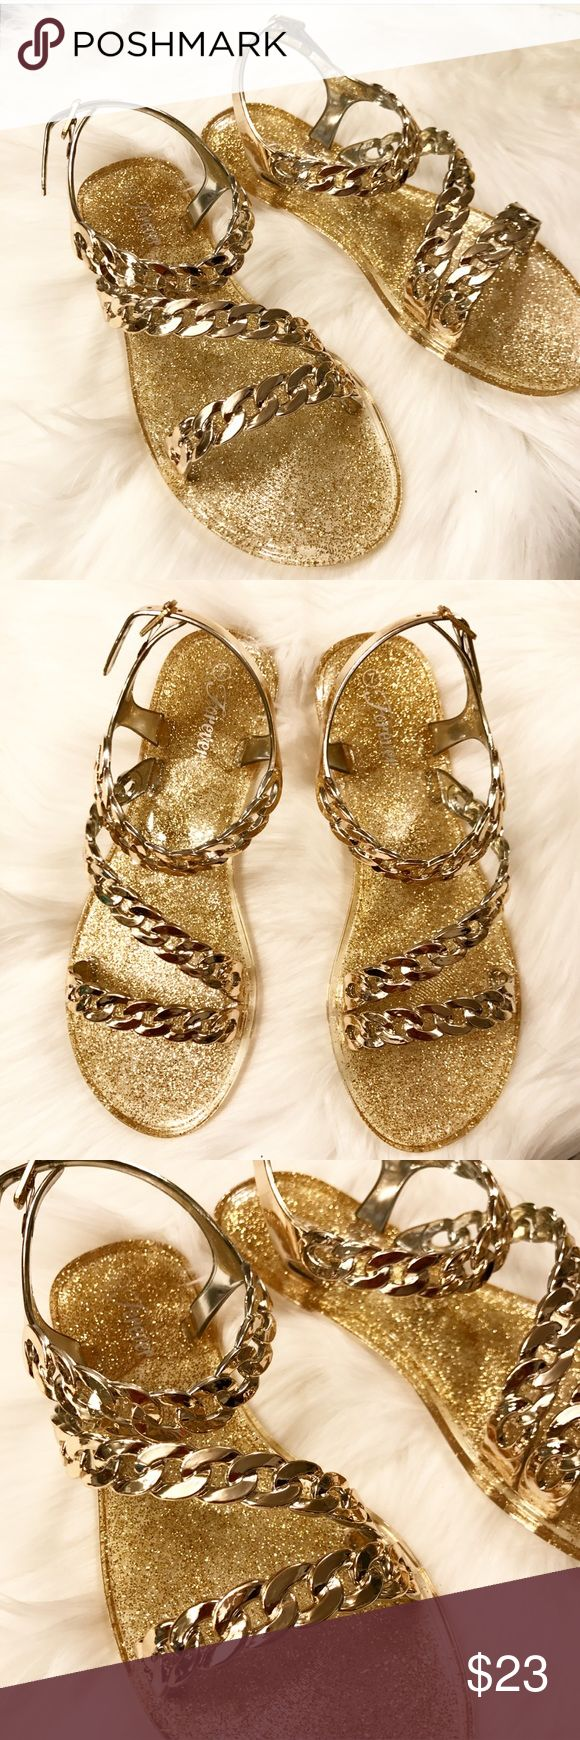 Gold Jelly Sandals Gold Glitter Chain Jelly Sandals. True to size. Very comfortable. Perfect for those pedicure days! Forever Shoes Sandals